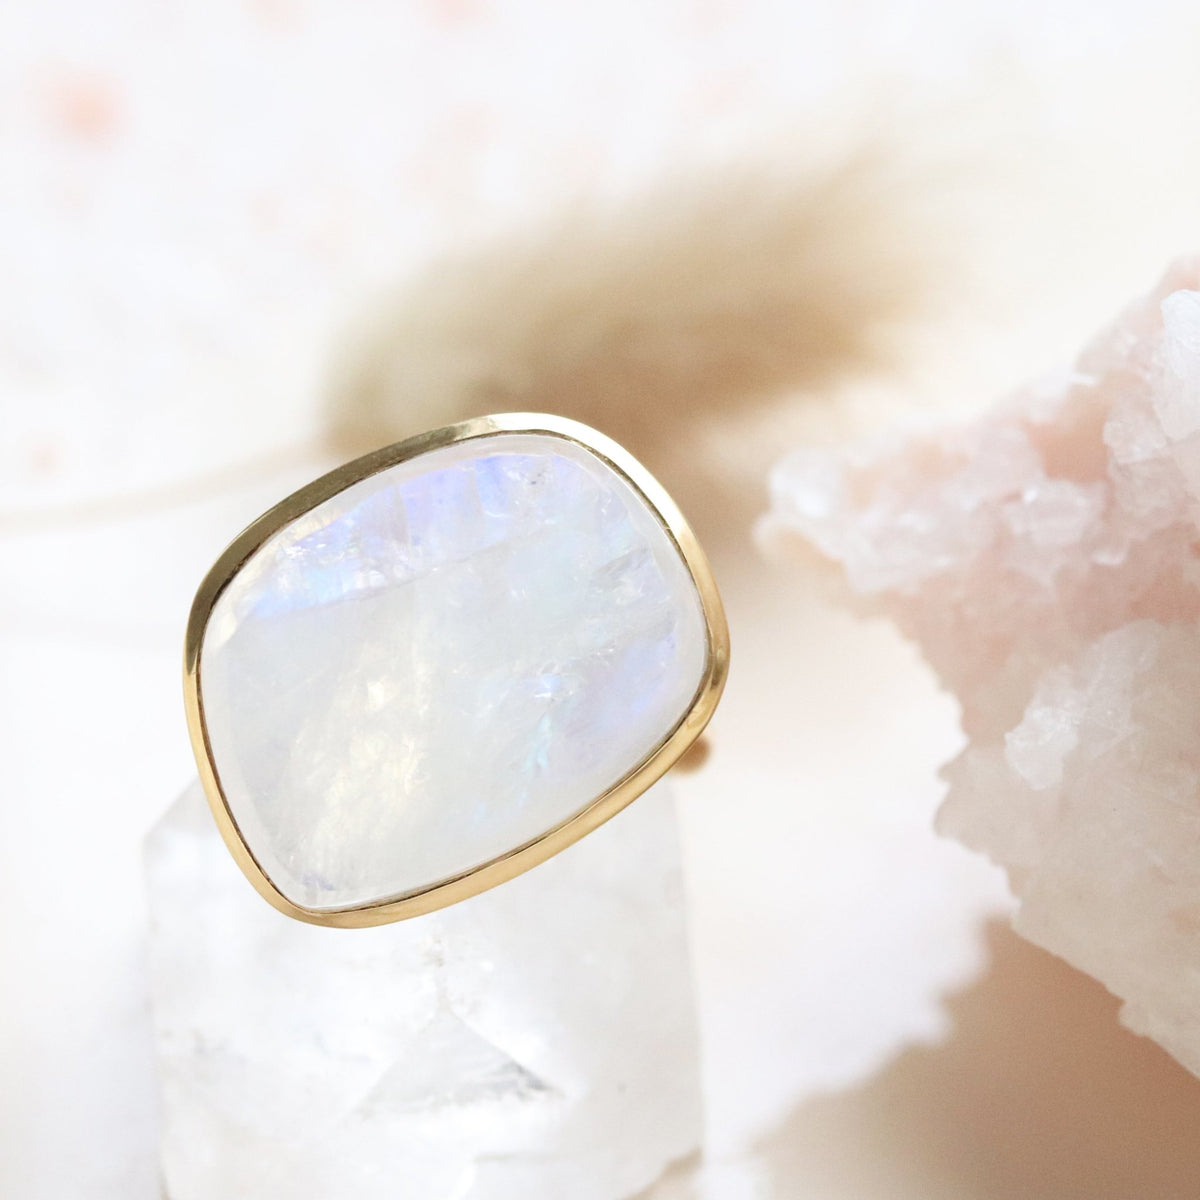 DARING RING - RAINBOW MOONSTONE & GOLD - SO PRETTY CARA COTTER